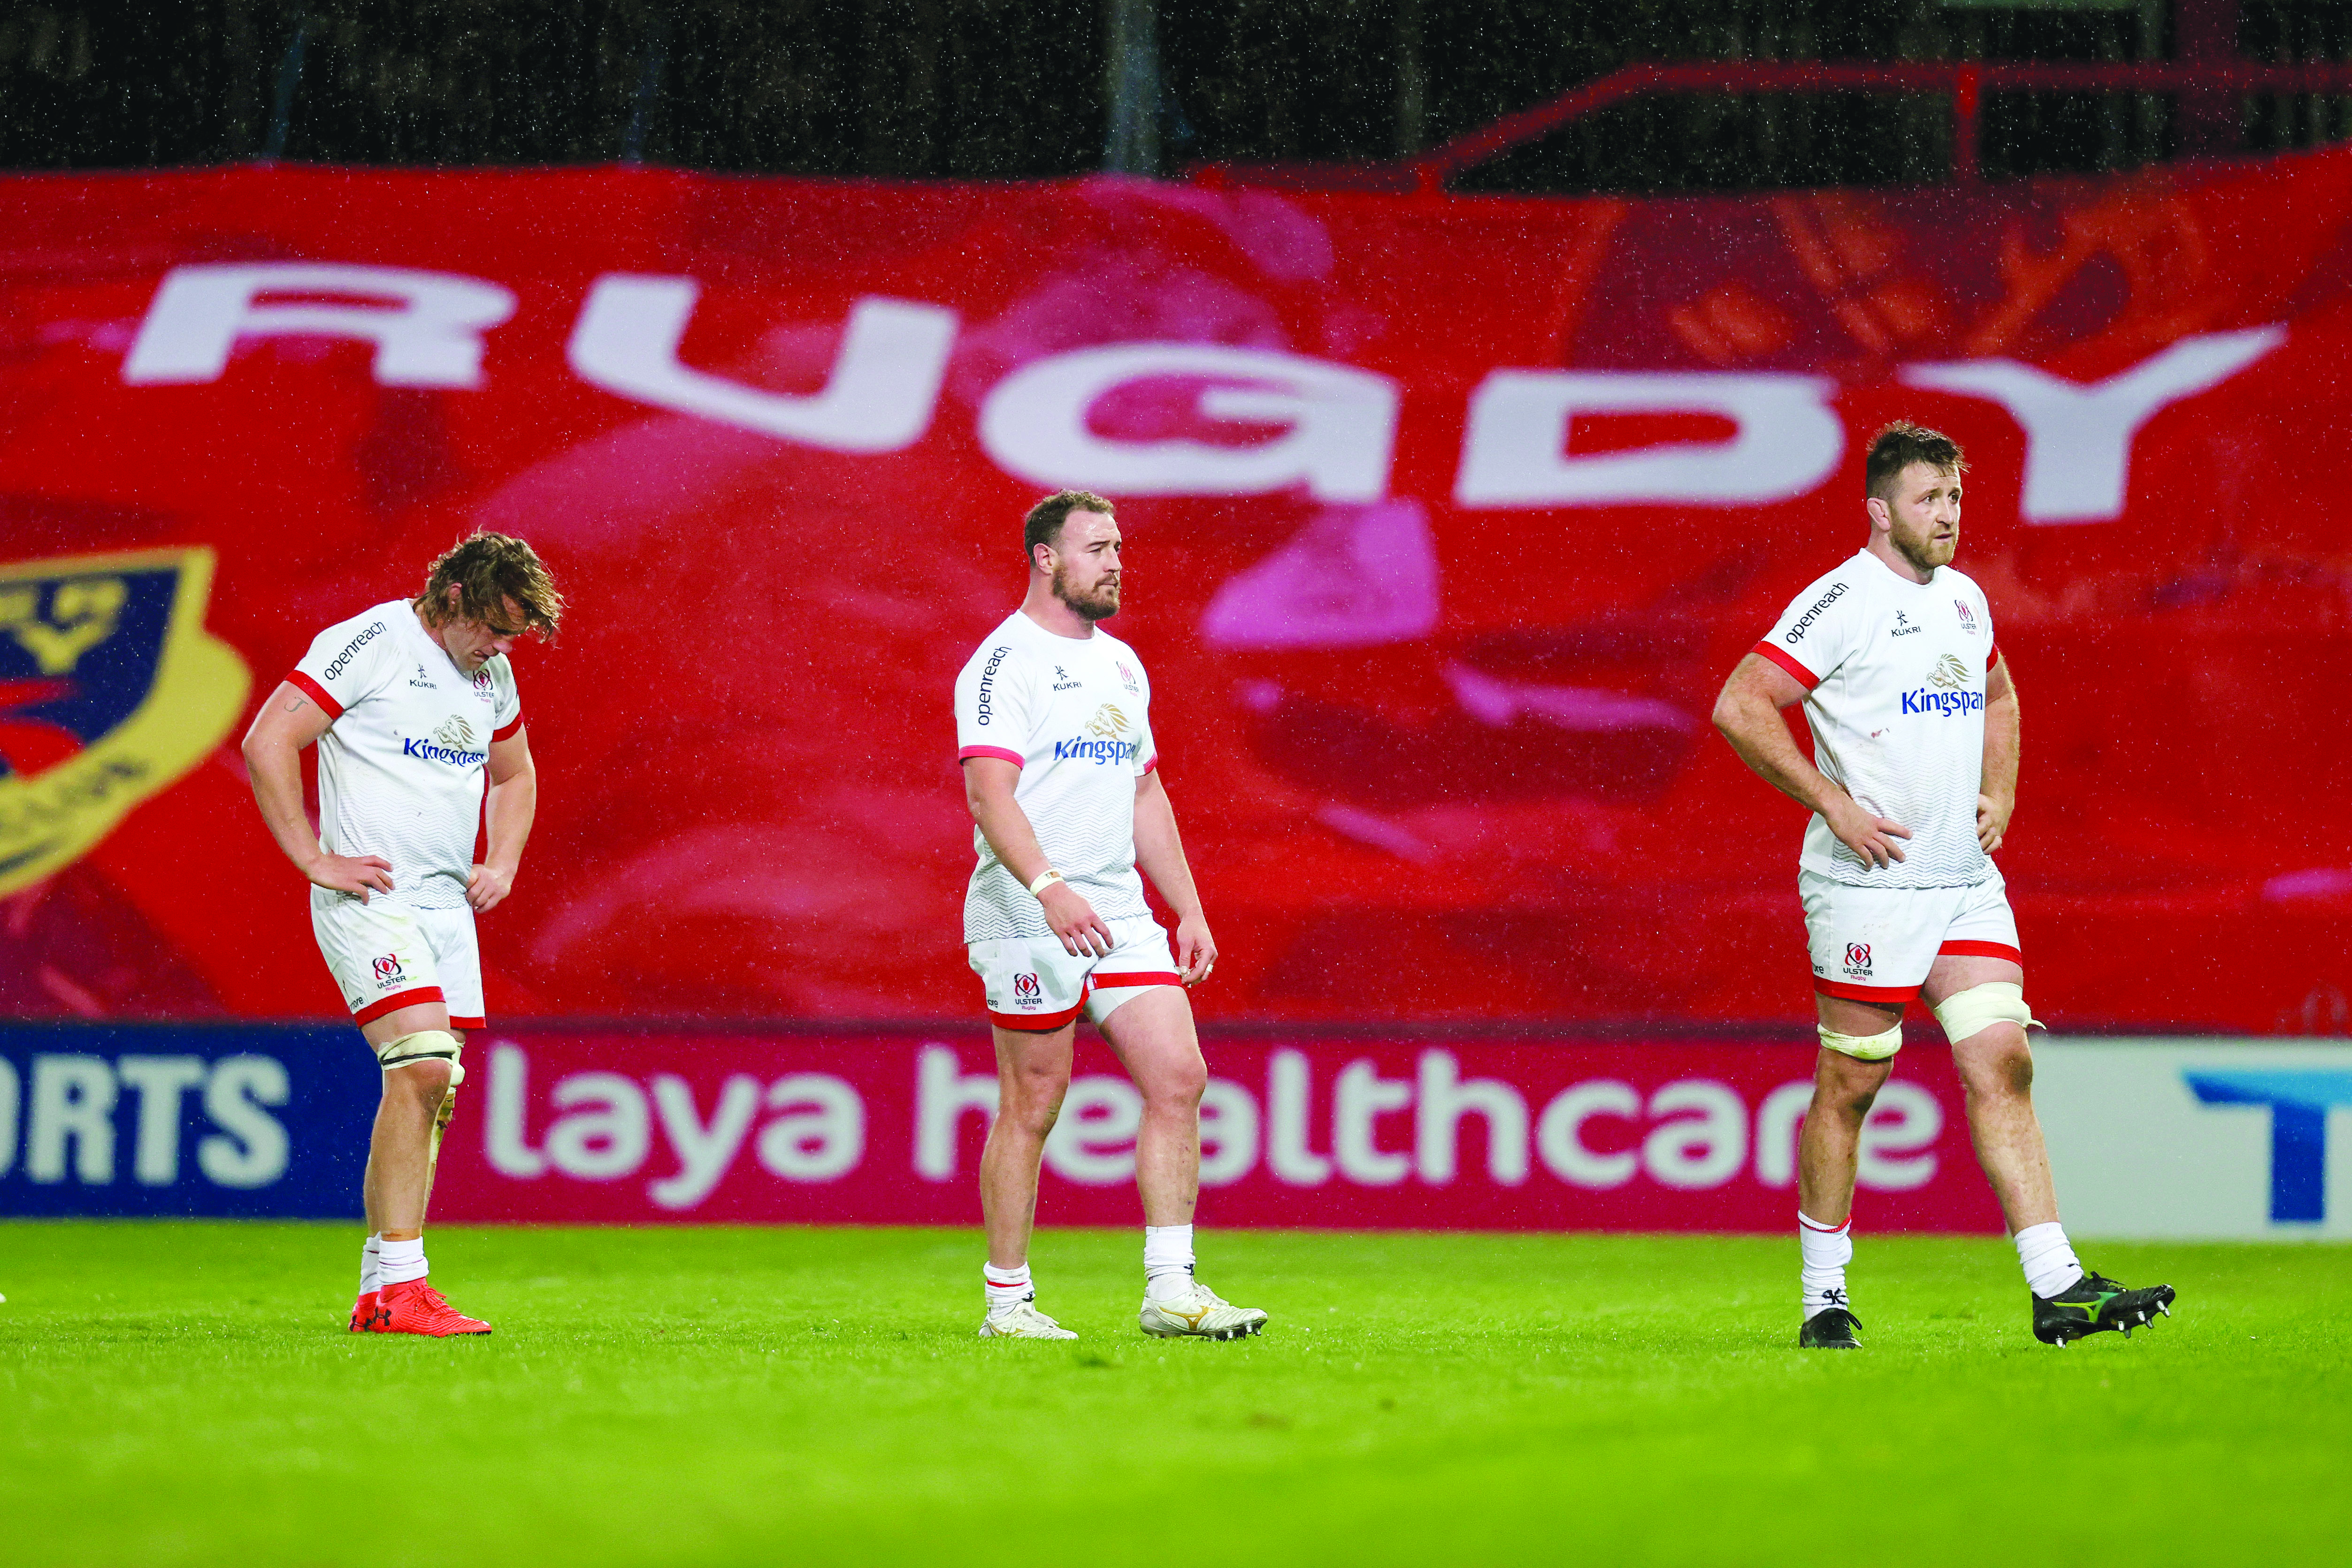 Jordi Murphy, Rob Herring and Alan O\'Connor trudge off the Thomond Park pitch last week as defeat to Munster all but ended their Rainbow Cup hopes, so pride is at stake when they face Leinster at the RDS this evening (Friday)